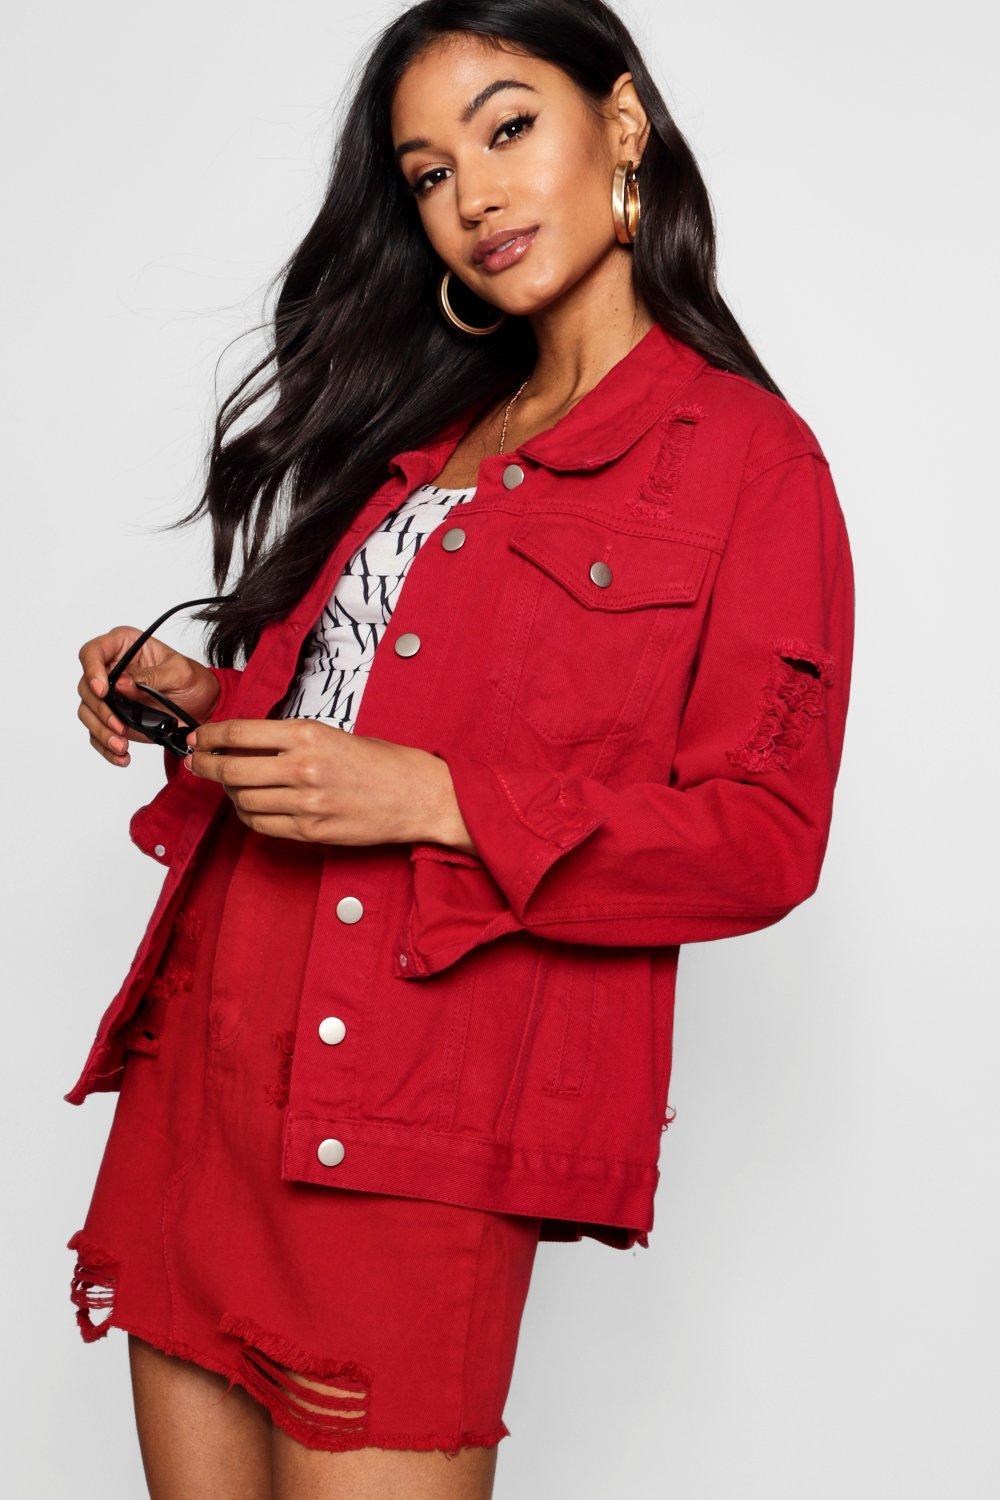 red Oversize Denim Distressed Distressed Distressed Jacket red Oversize red Oversize Denim Jacket Denim Distressed Jacket gwTZpq